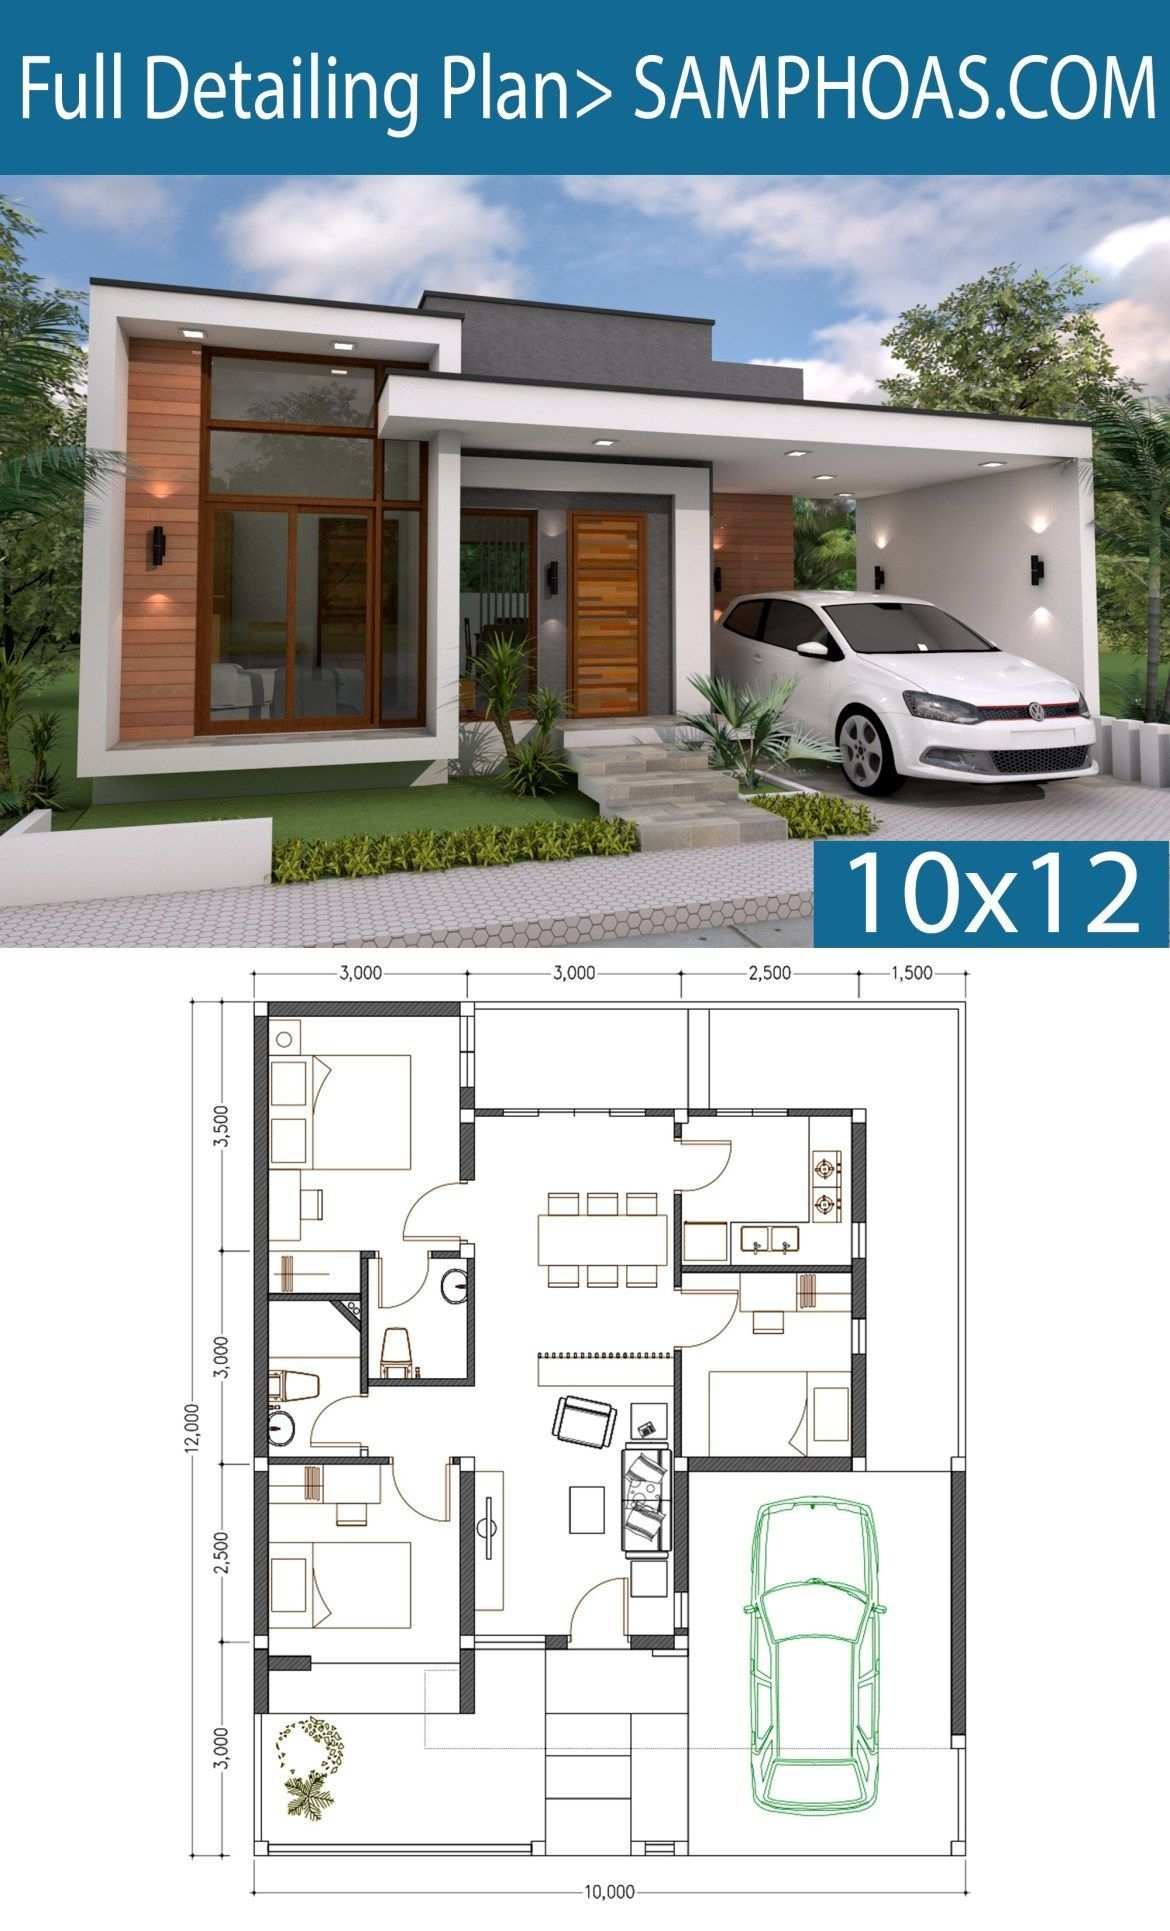 ea9618a0ea1a60bc9b4775d7172bdbb8 on Modern House Designs Pictures Gallery id=1005774